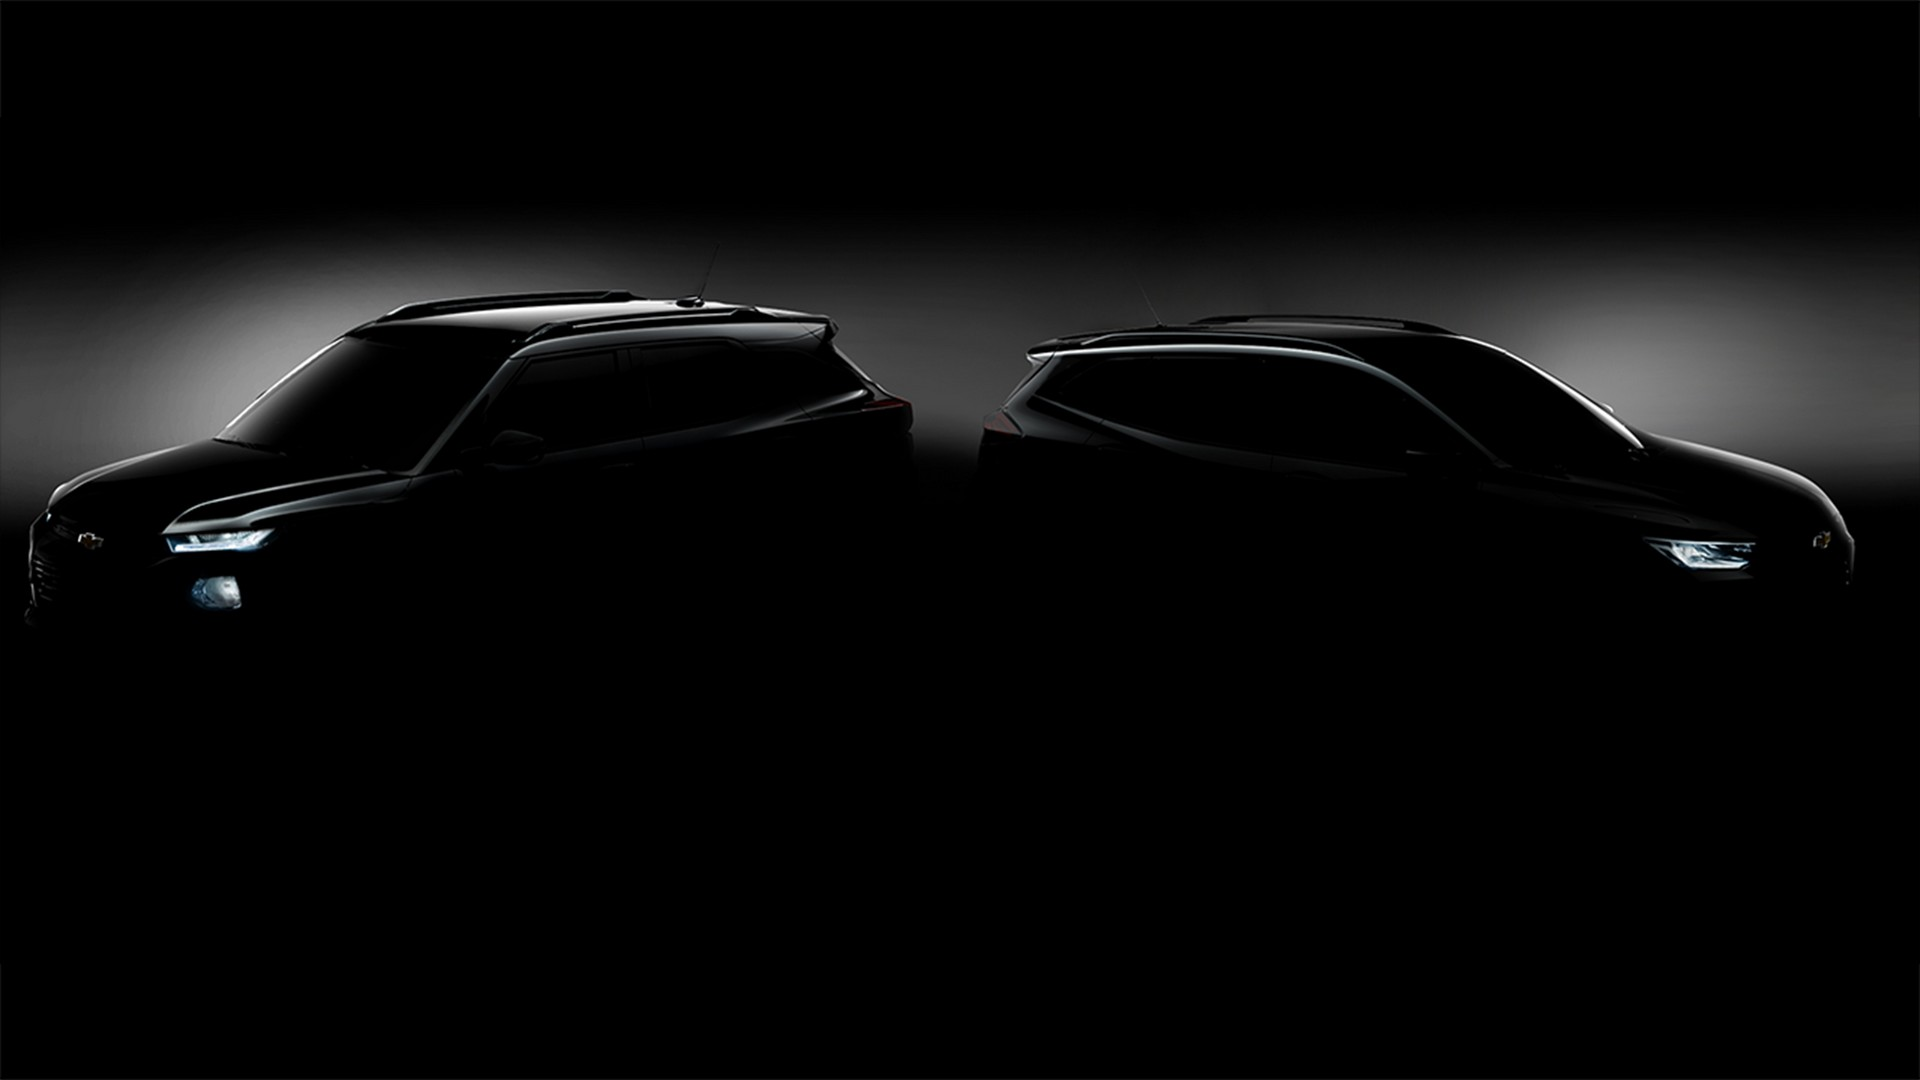 2020 chevrolet-tracker-and-trailblazer